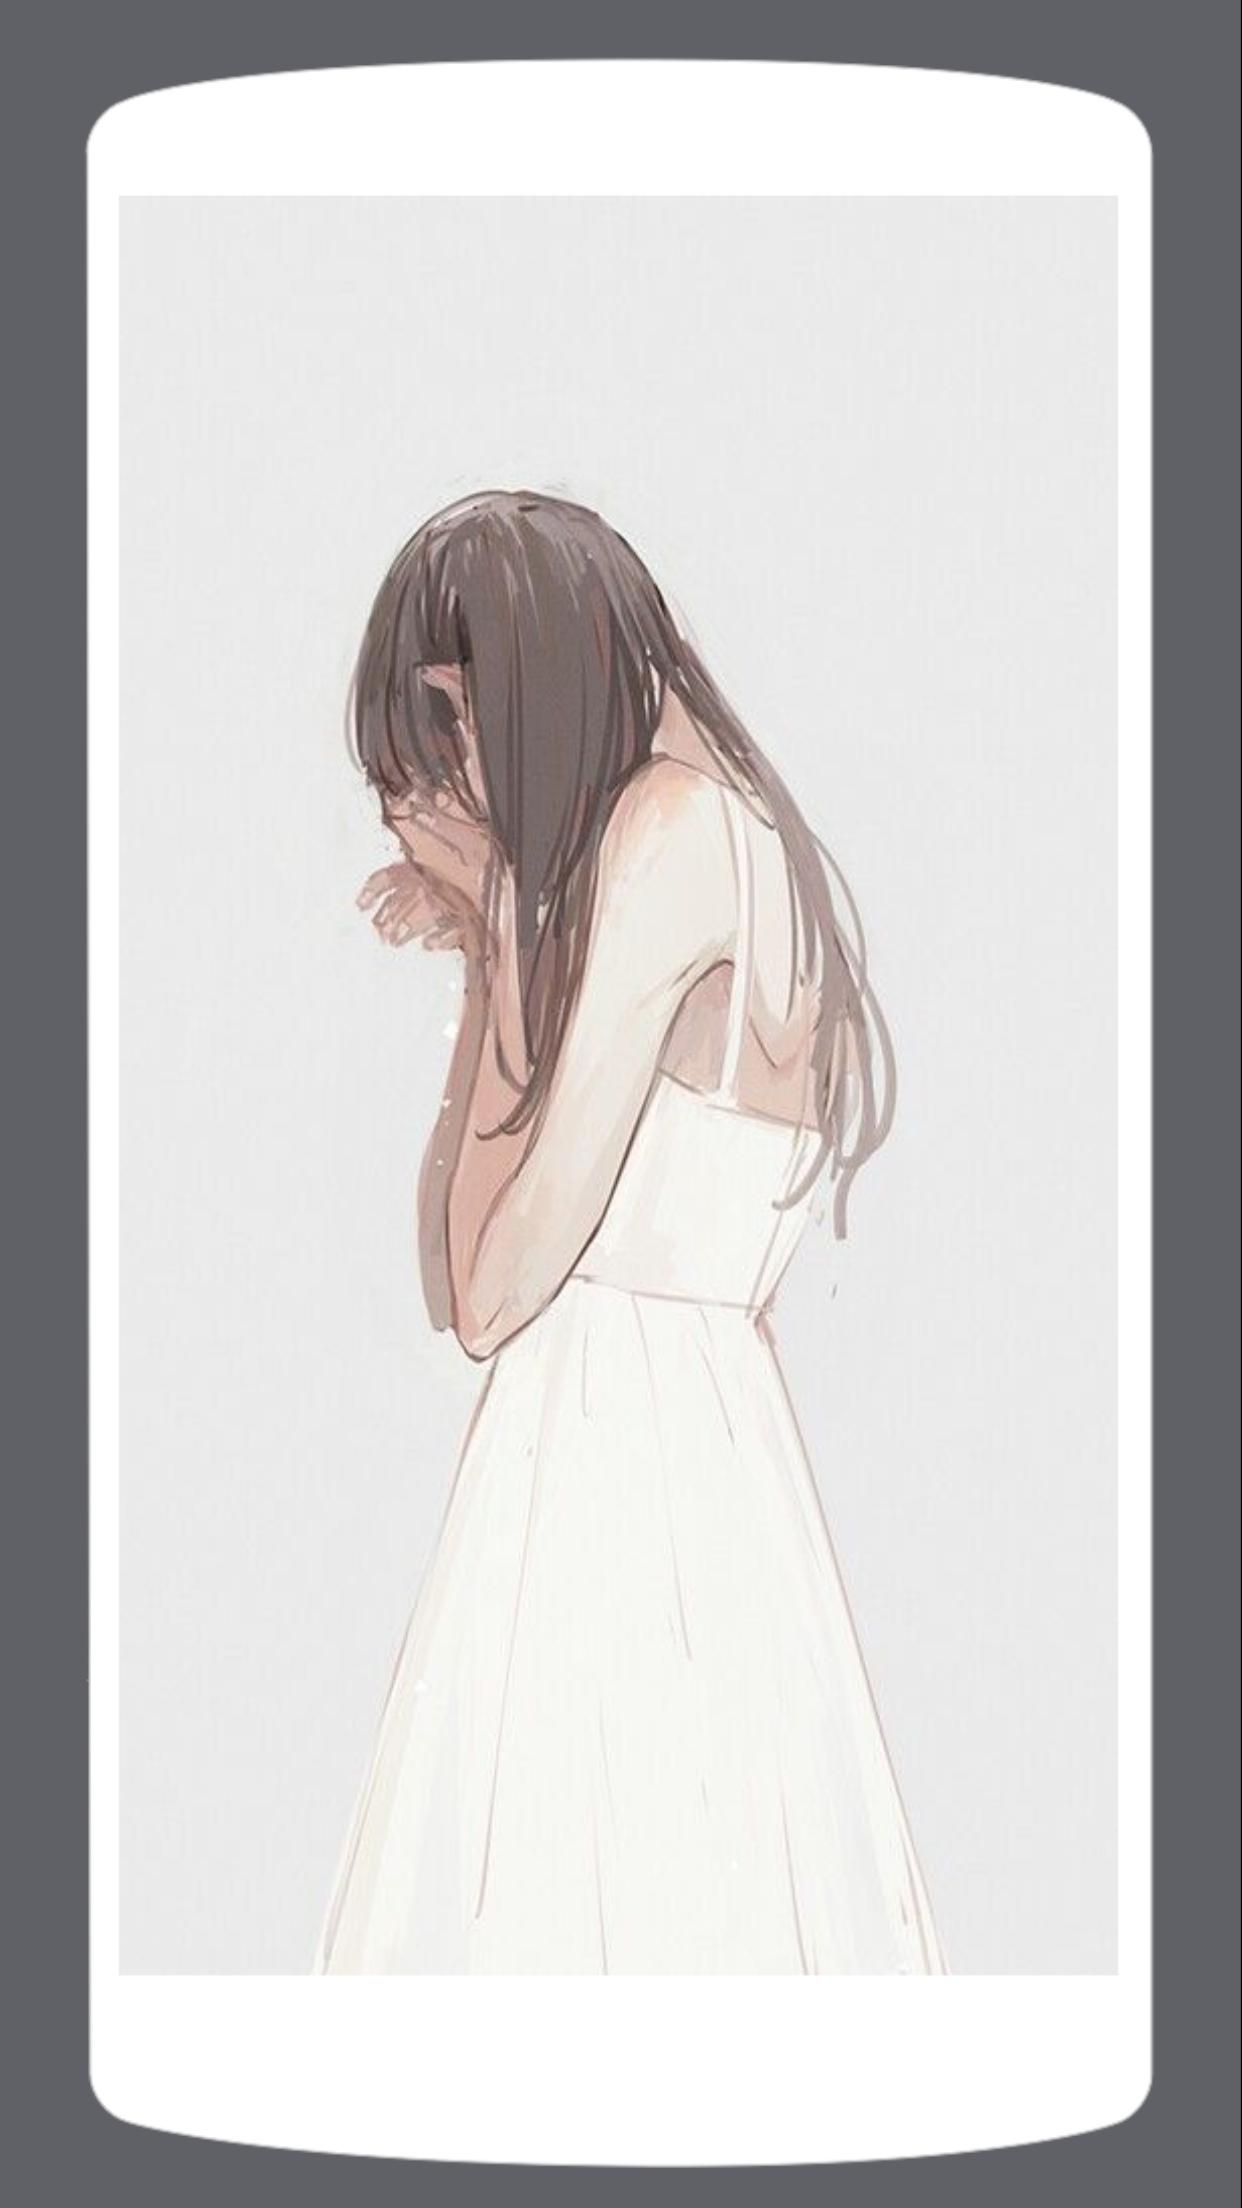 HD Sad Anime Wallpaper for Android   APK Download 1242x2208